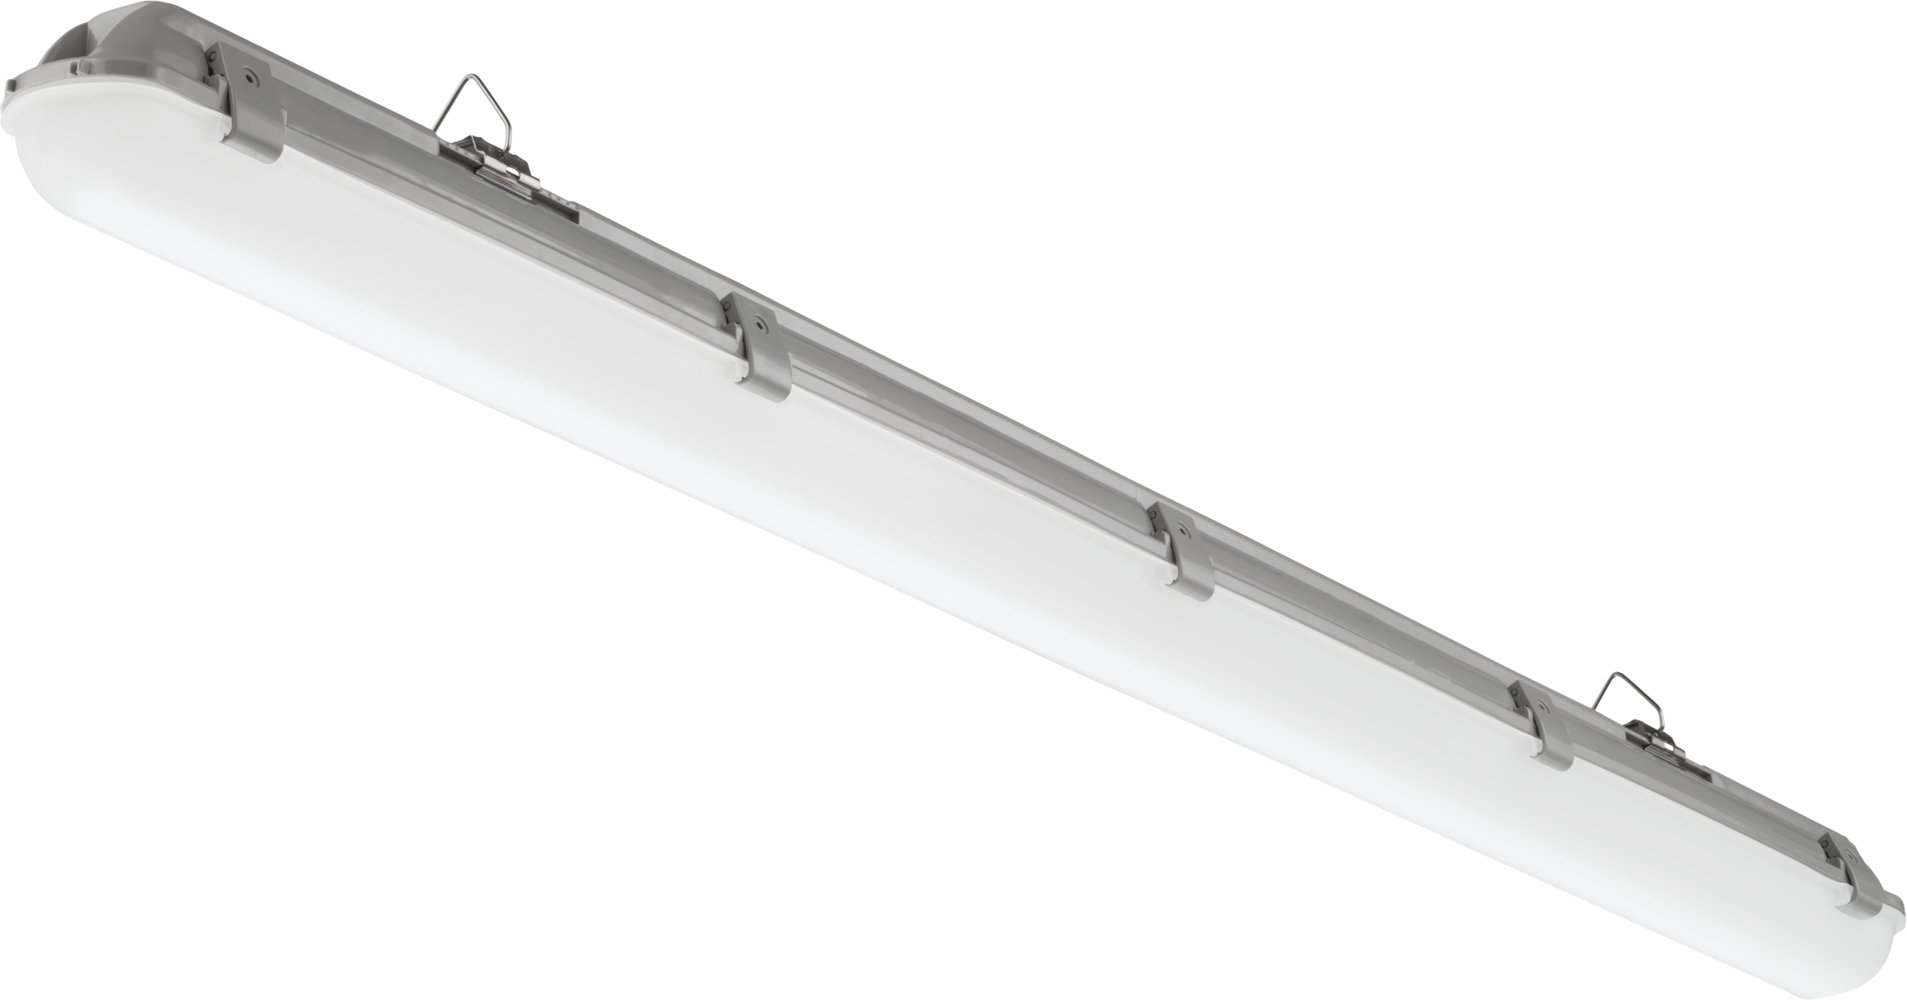 Lithonia Lighting L48 3500LM MVOLT 40K 80CRI Xvml LED 4 Foot Vapor Tight, 3500 Lumens, Dlc Compliant, 4000K